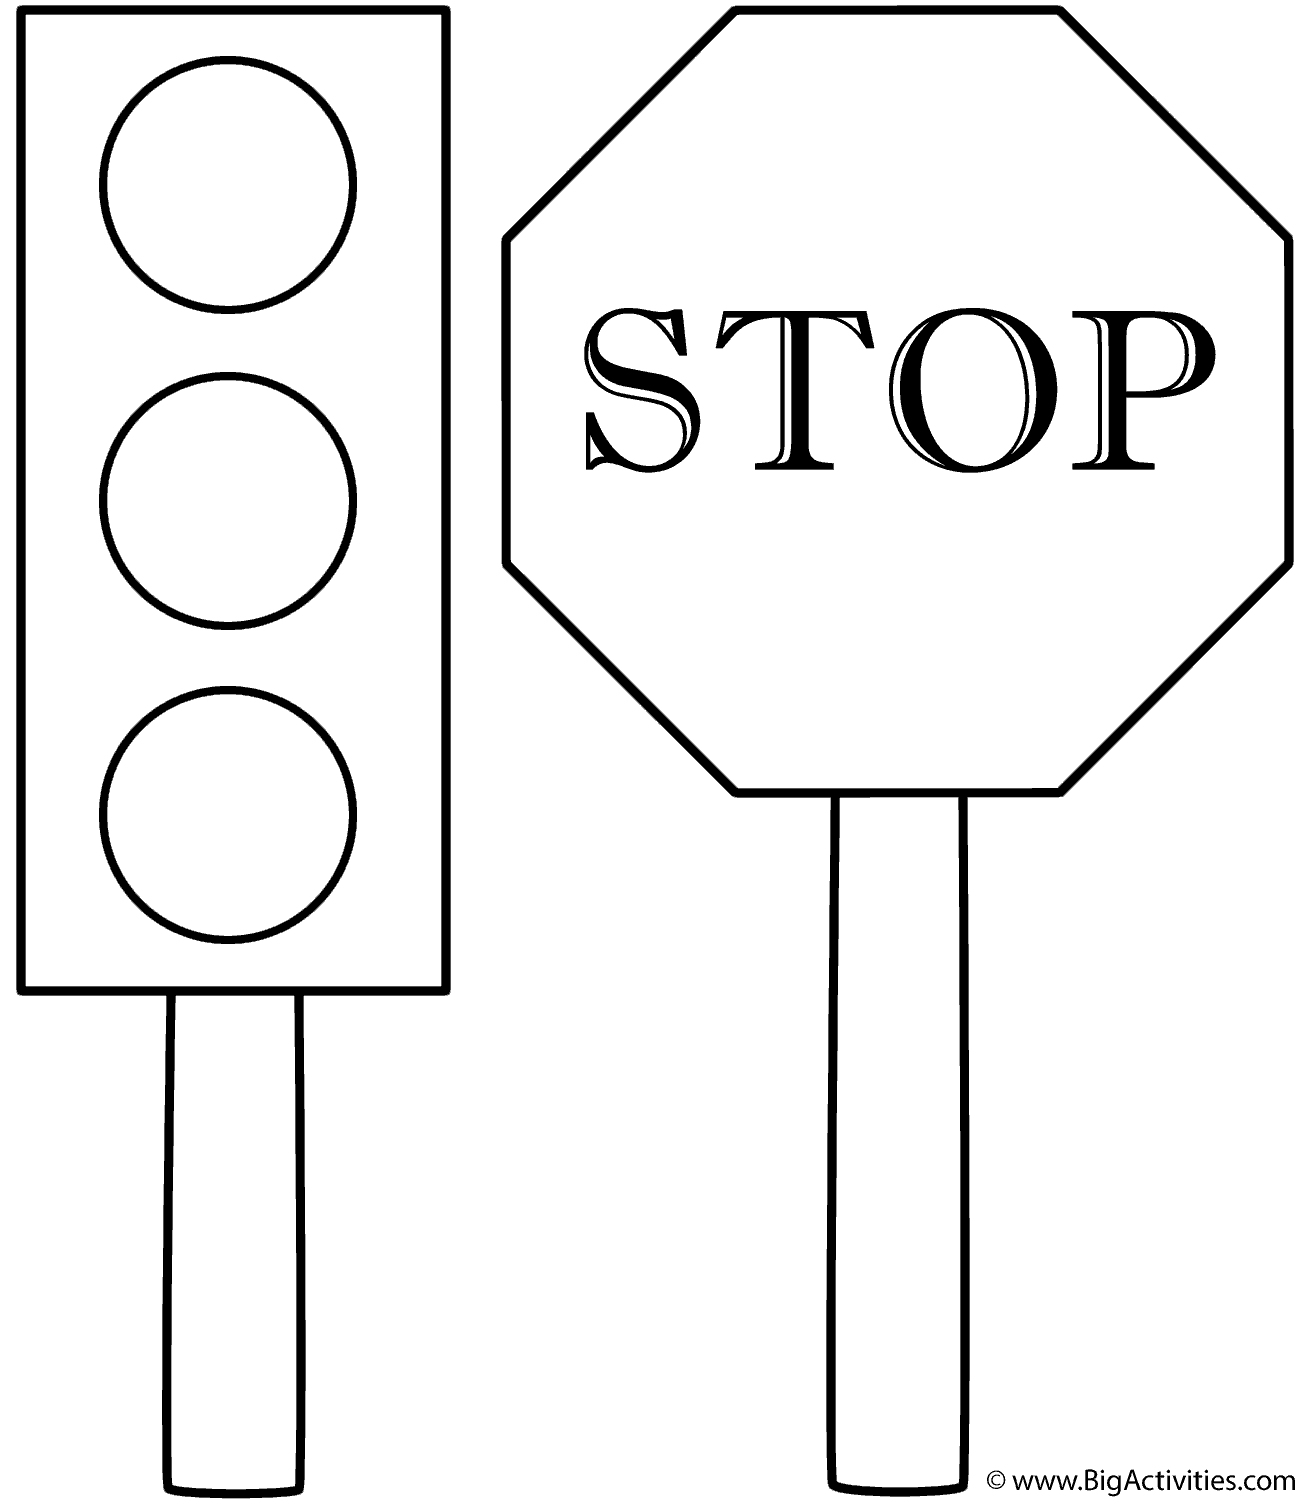 traffic light coloring page traffic light all coloring page wecoloringpagecom traffic page coloring light